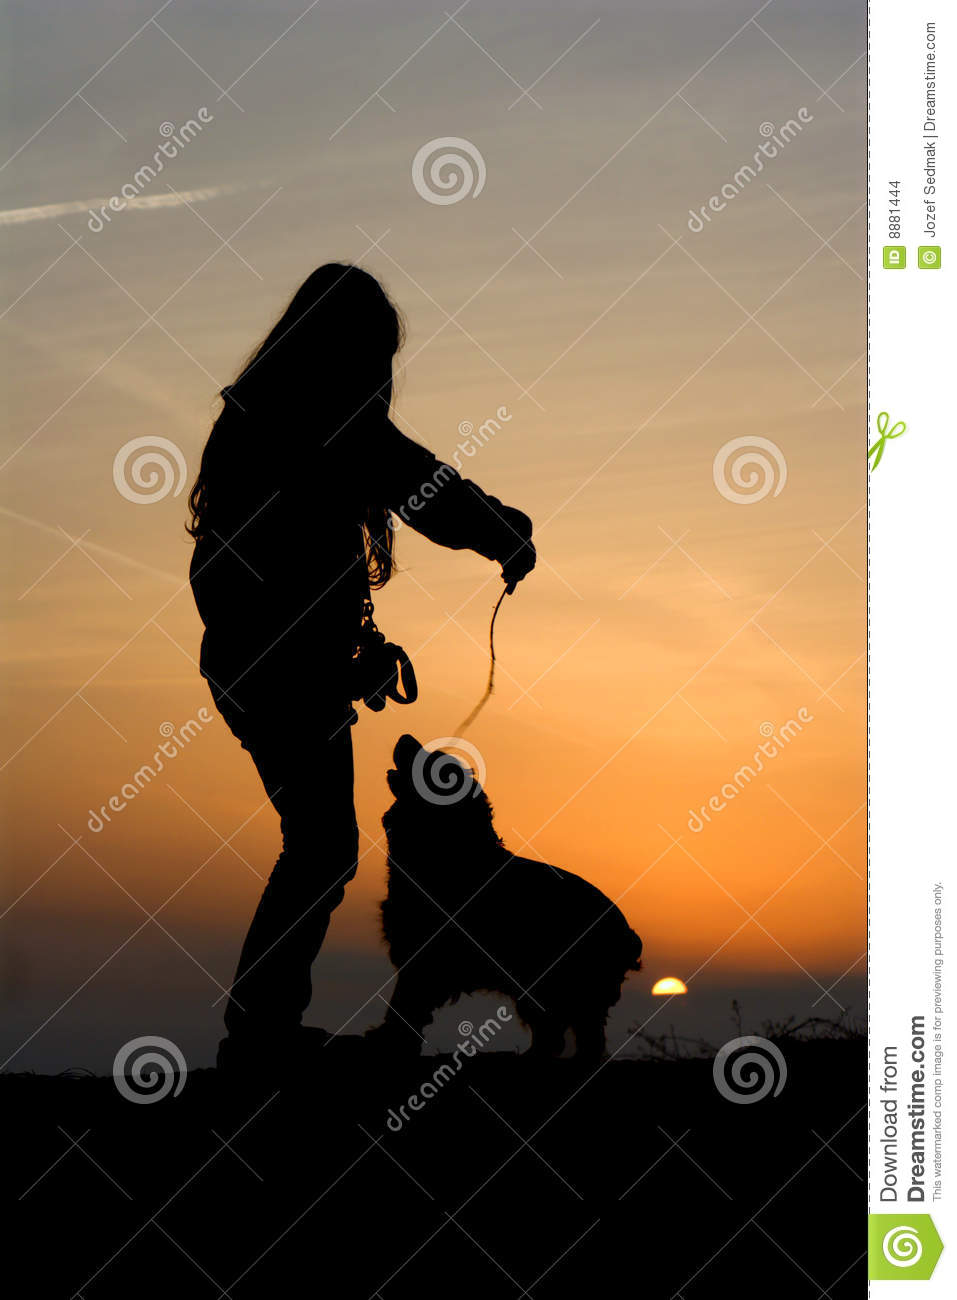 Fun Of Children And Dog In Sunset Stock Images - Image ...